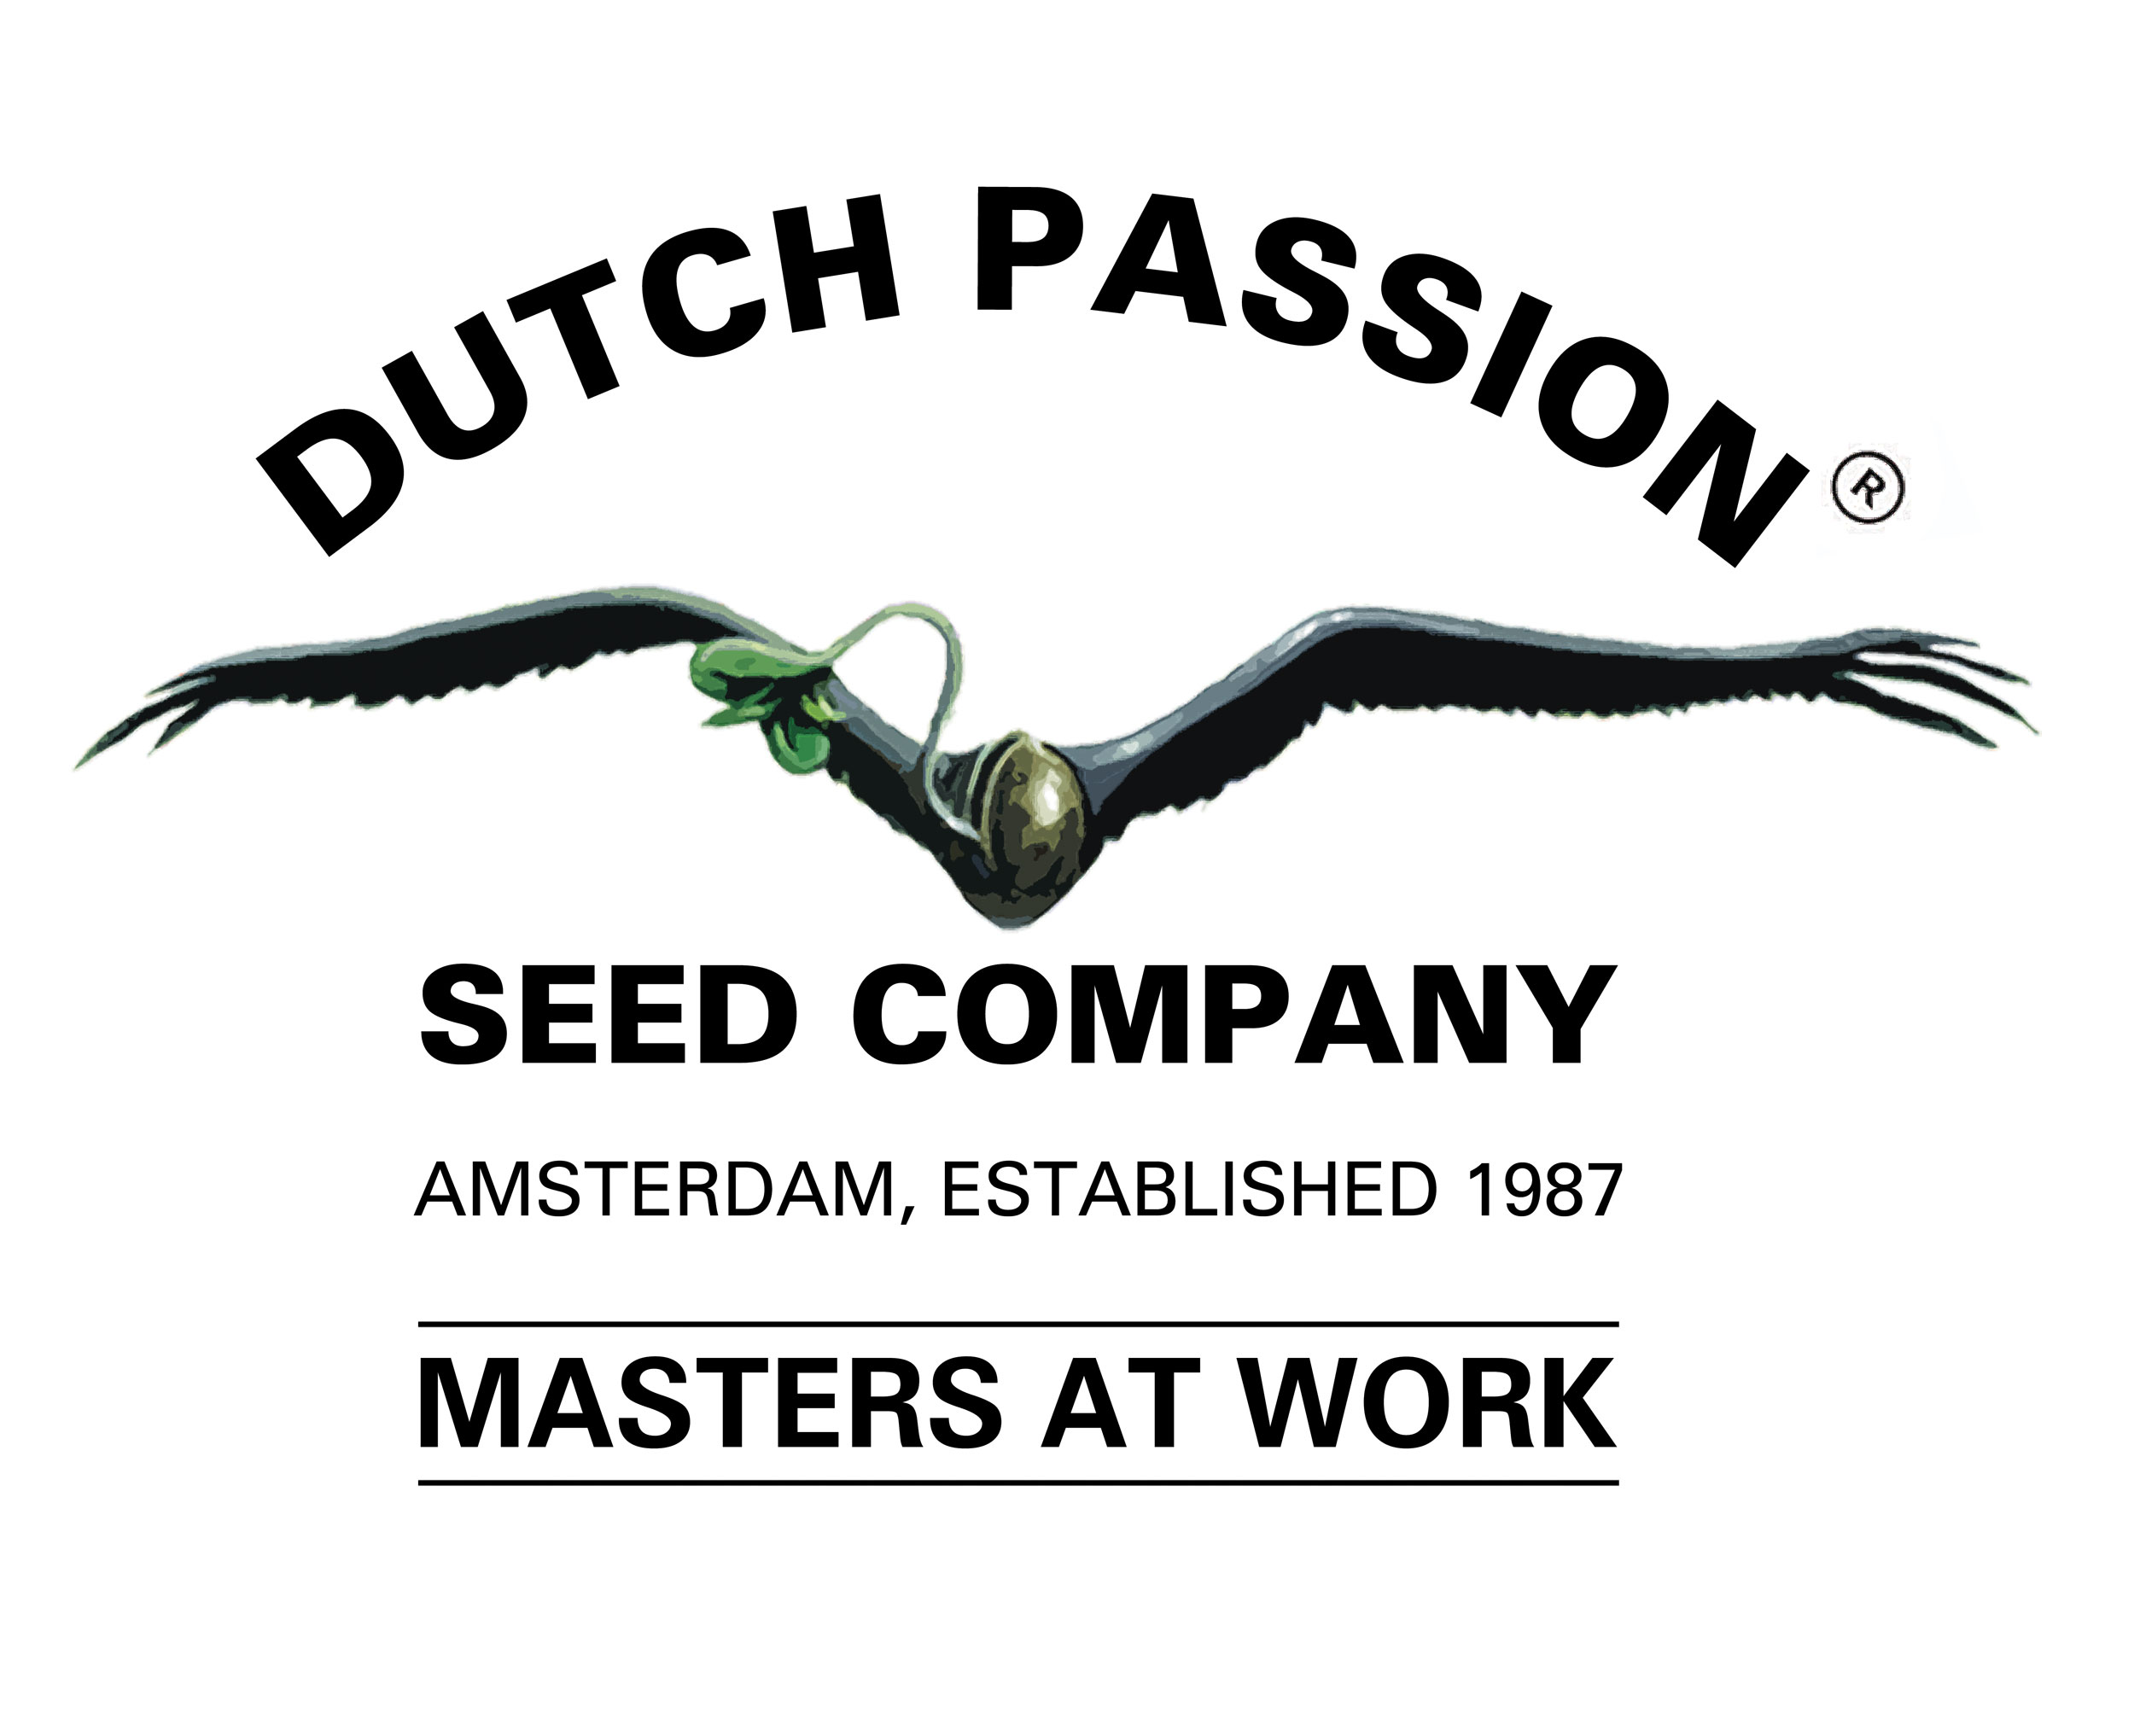 Dutch Passion Power Plant 10ks Regular (Regular)